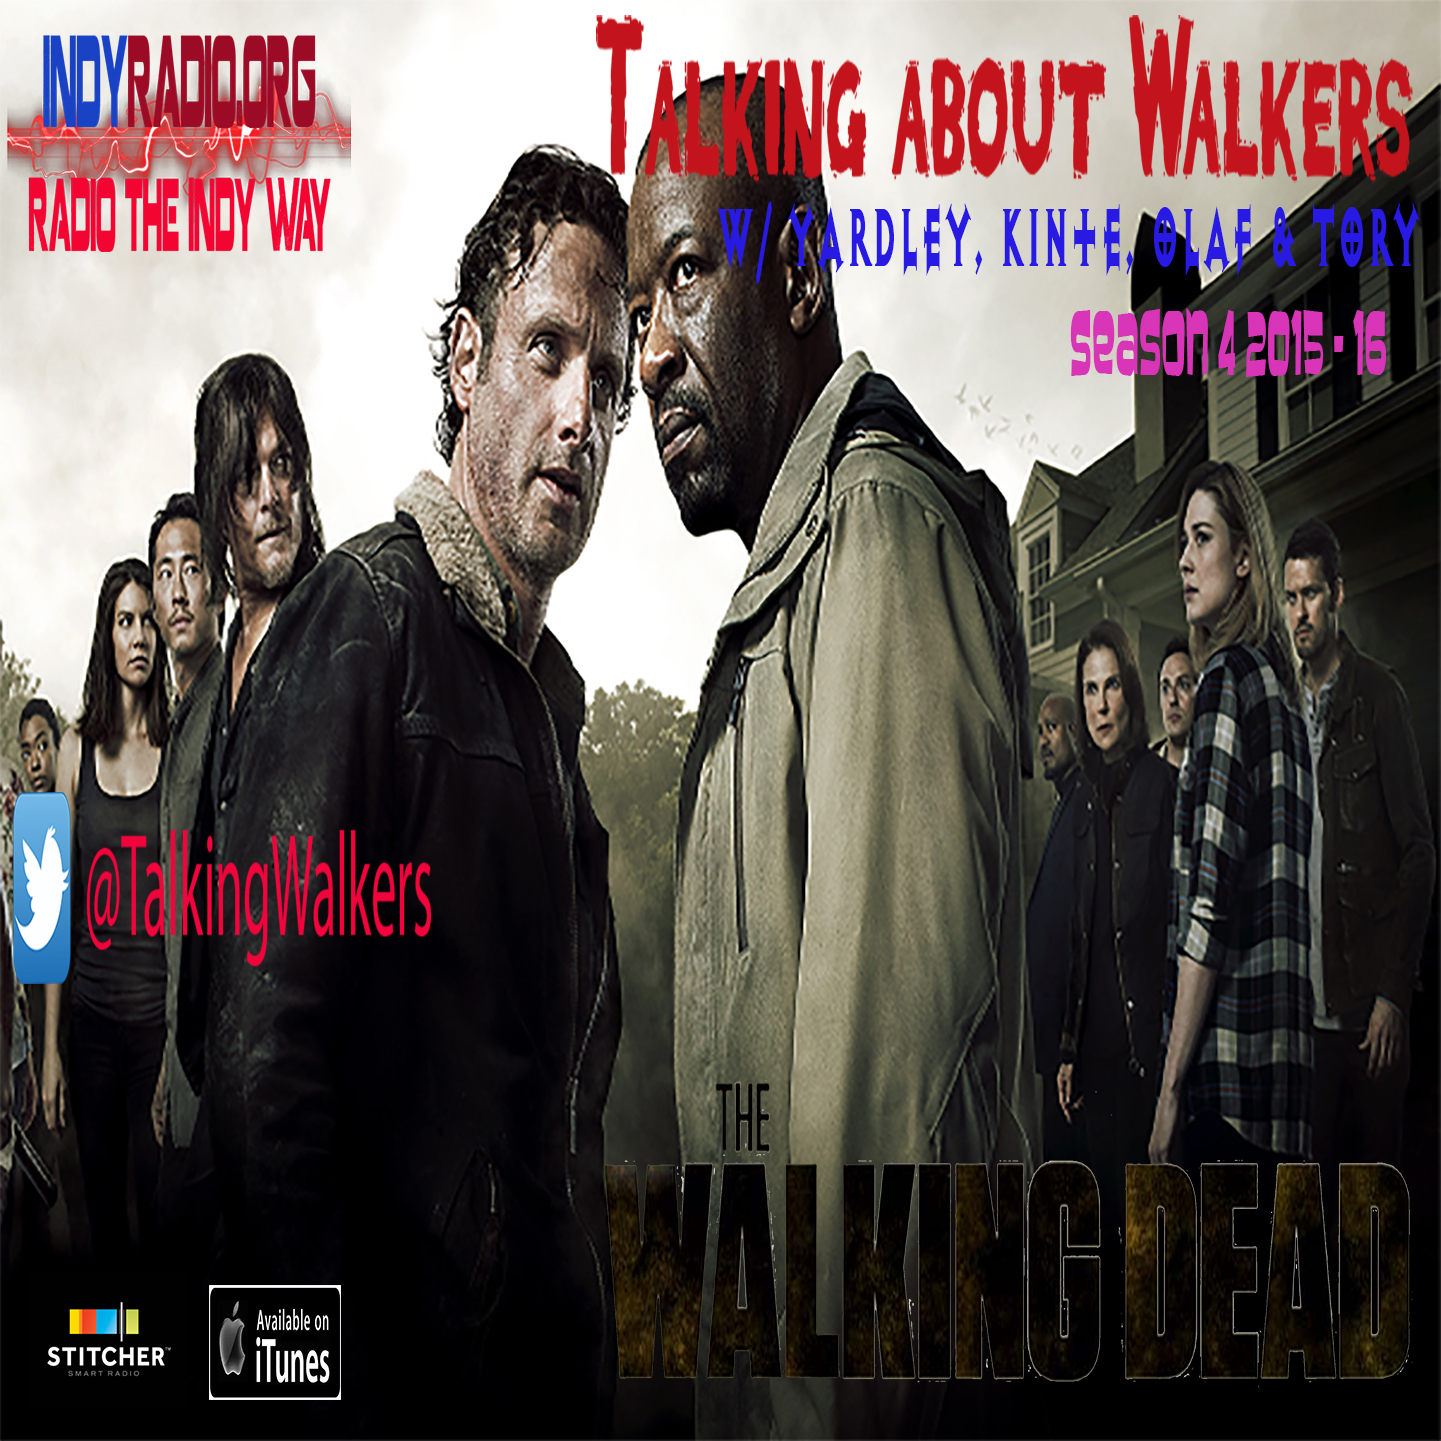 The Walking Dead: Talking about Walkers